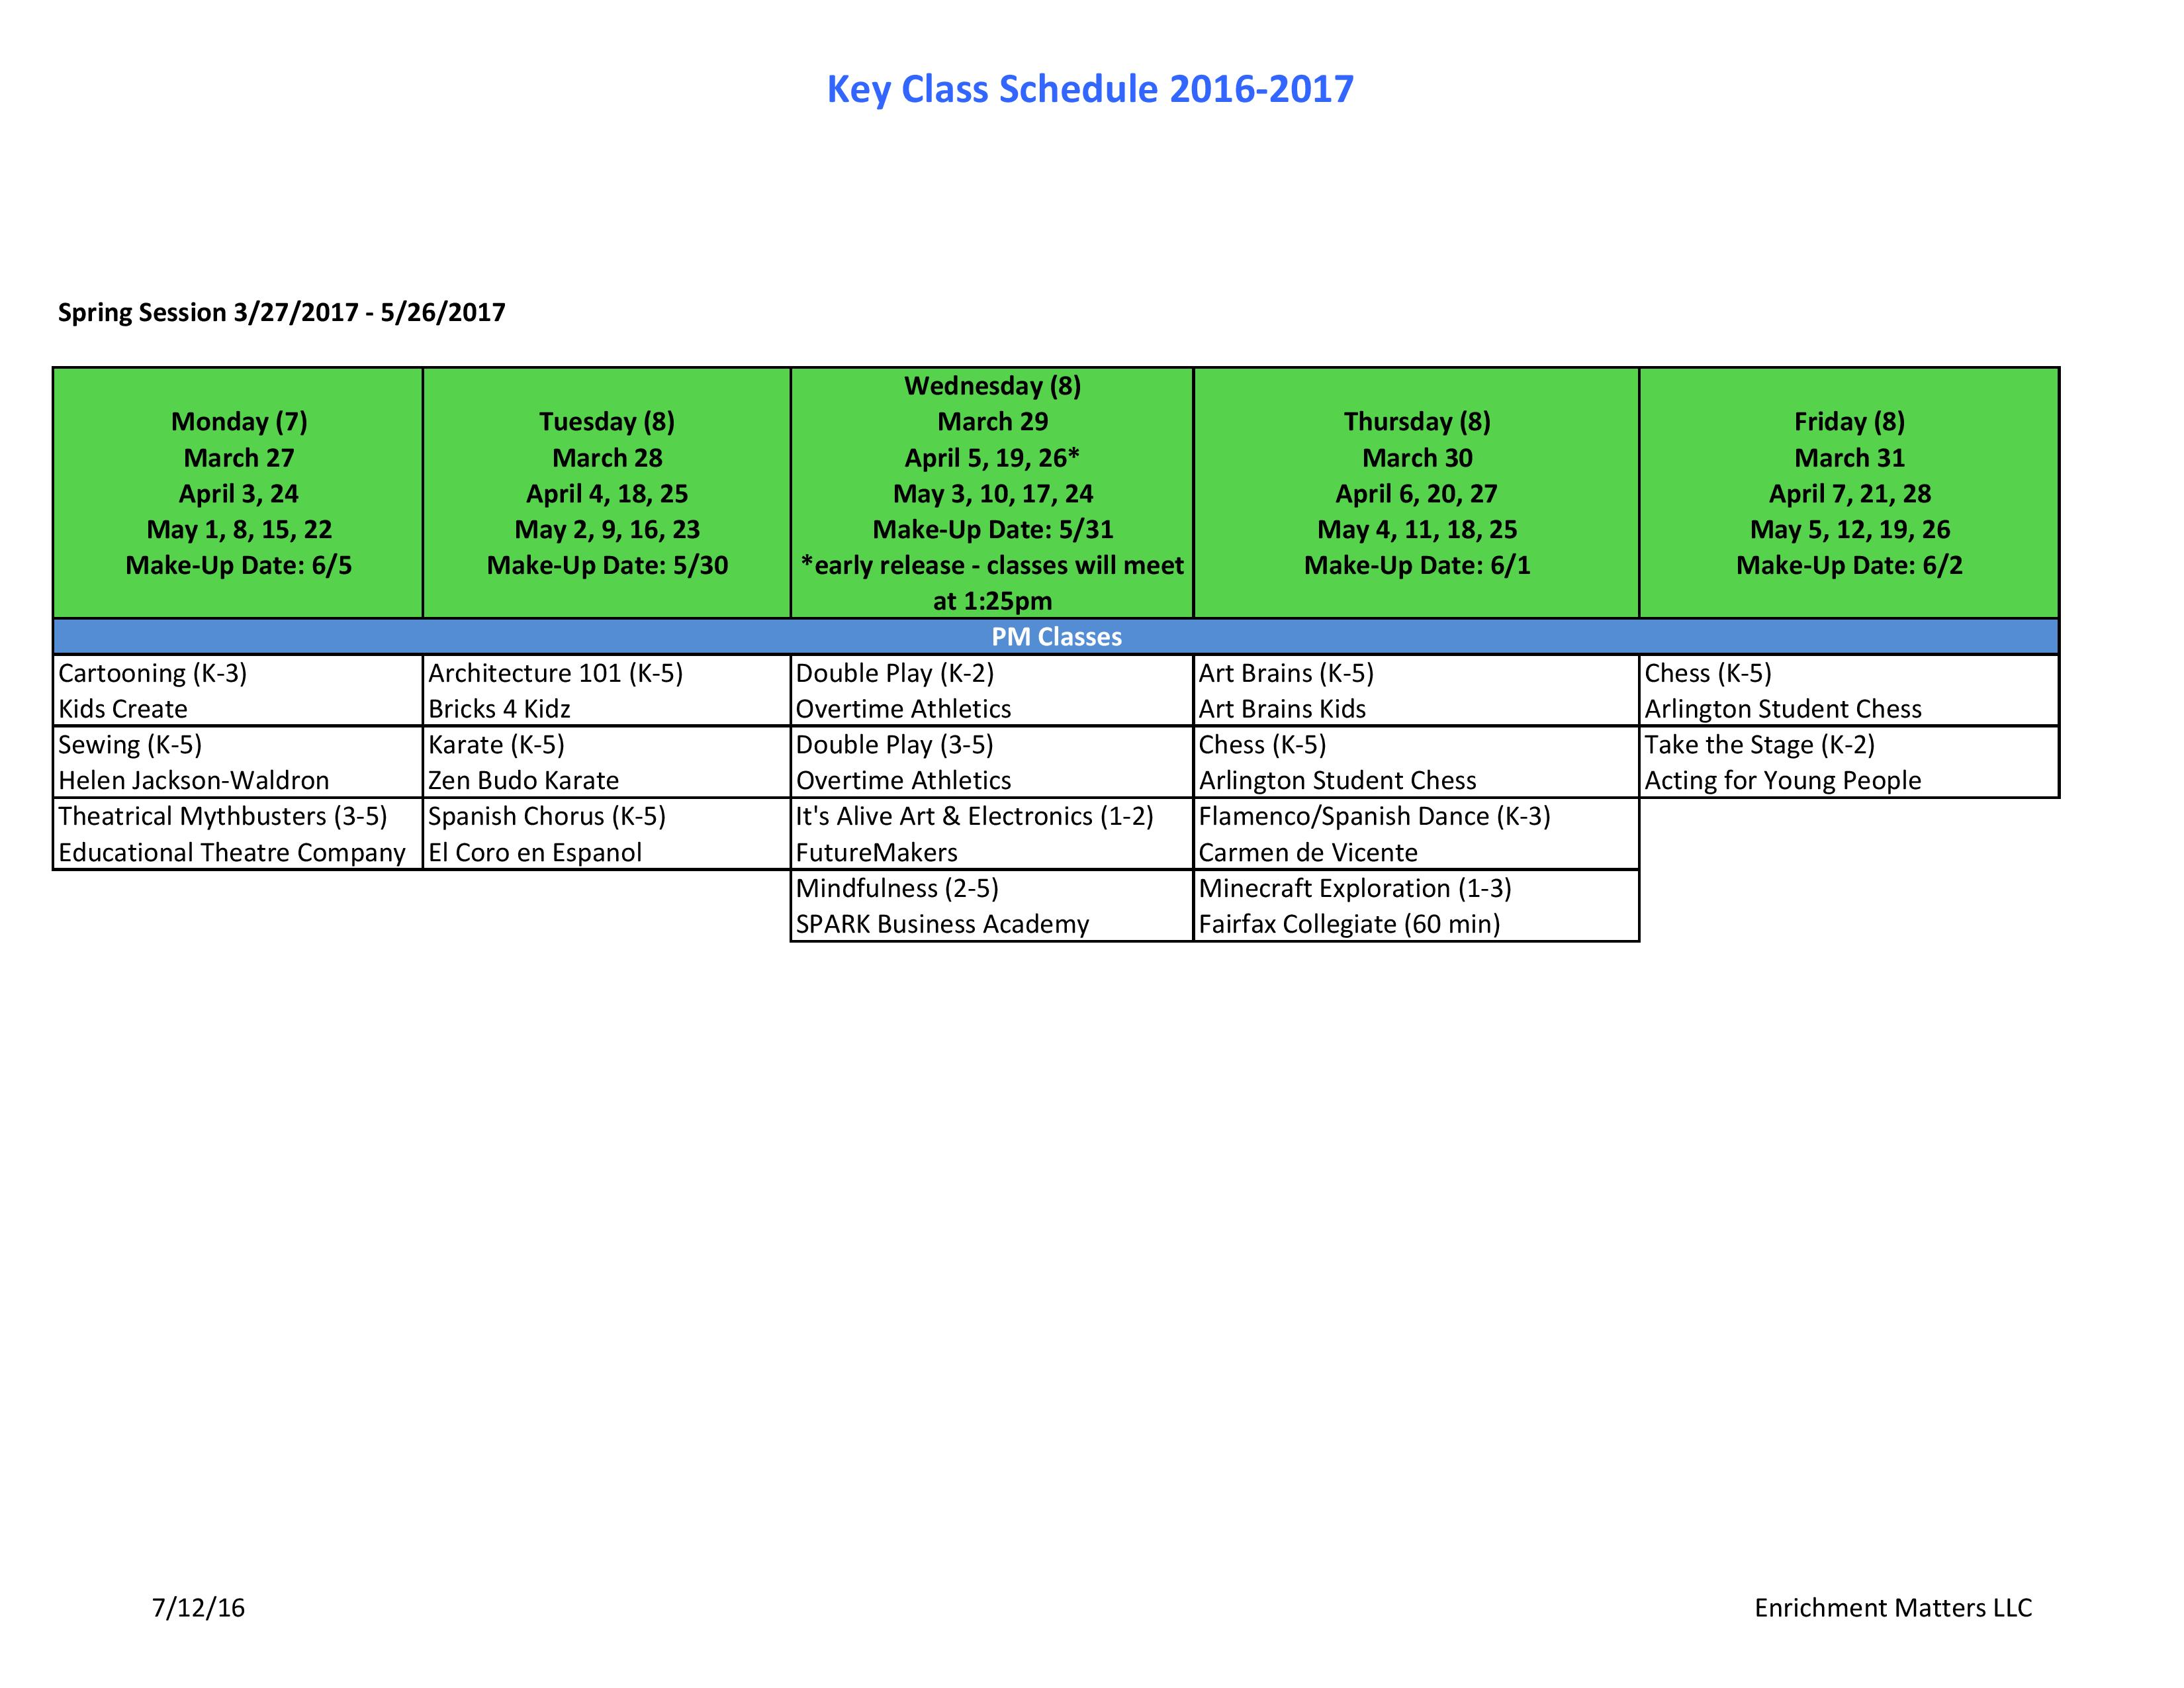 Key Class Schedule 2016-2017-page-002